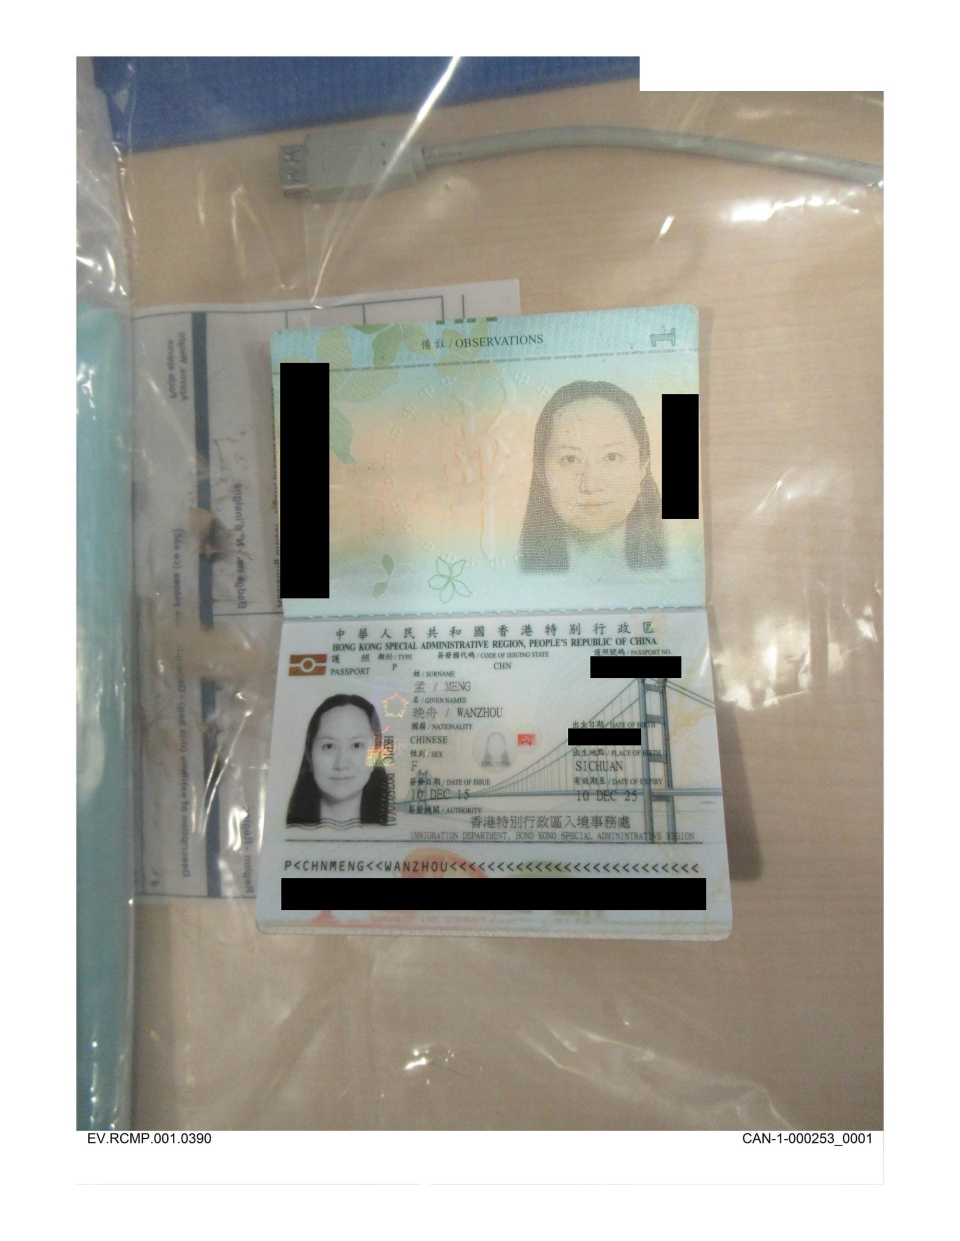 Meng's passport